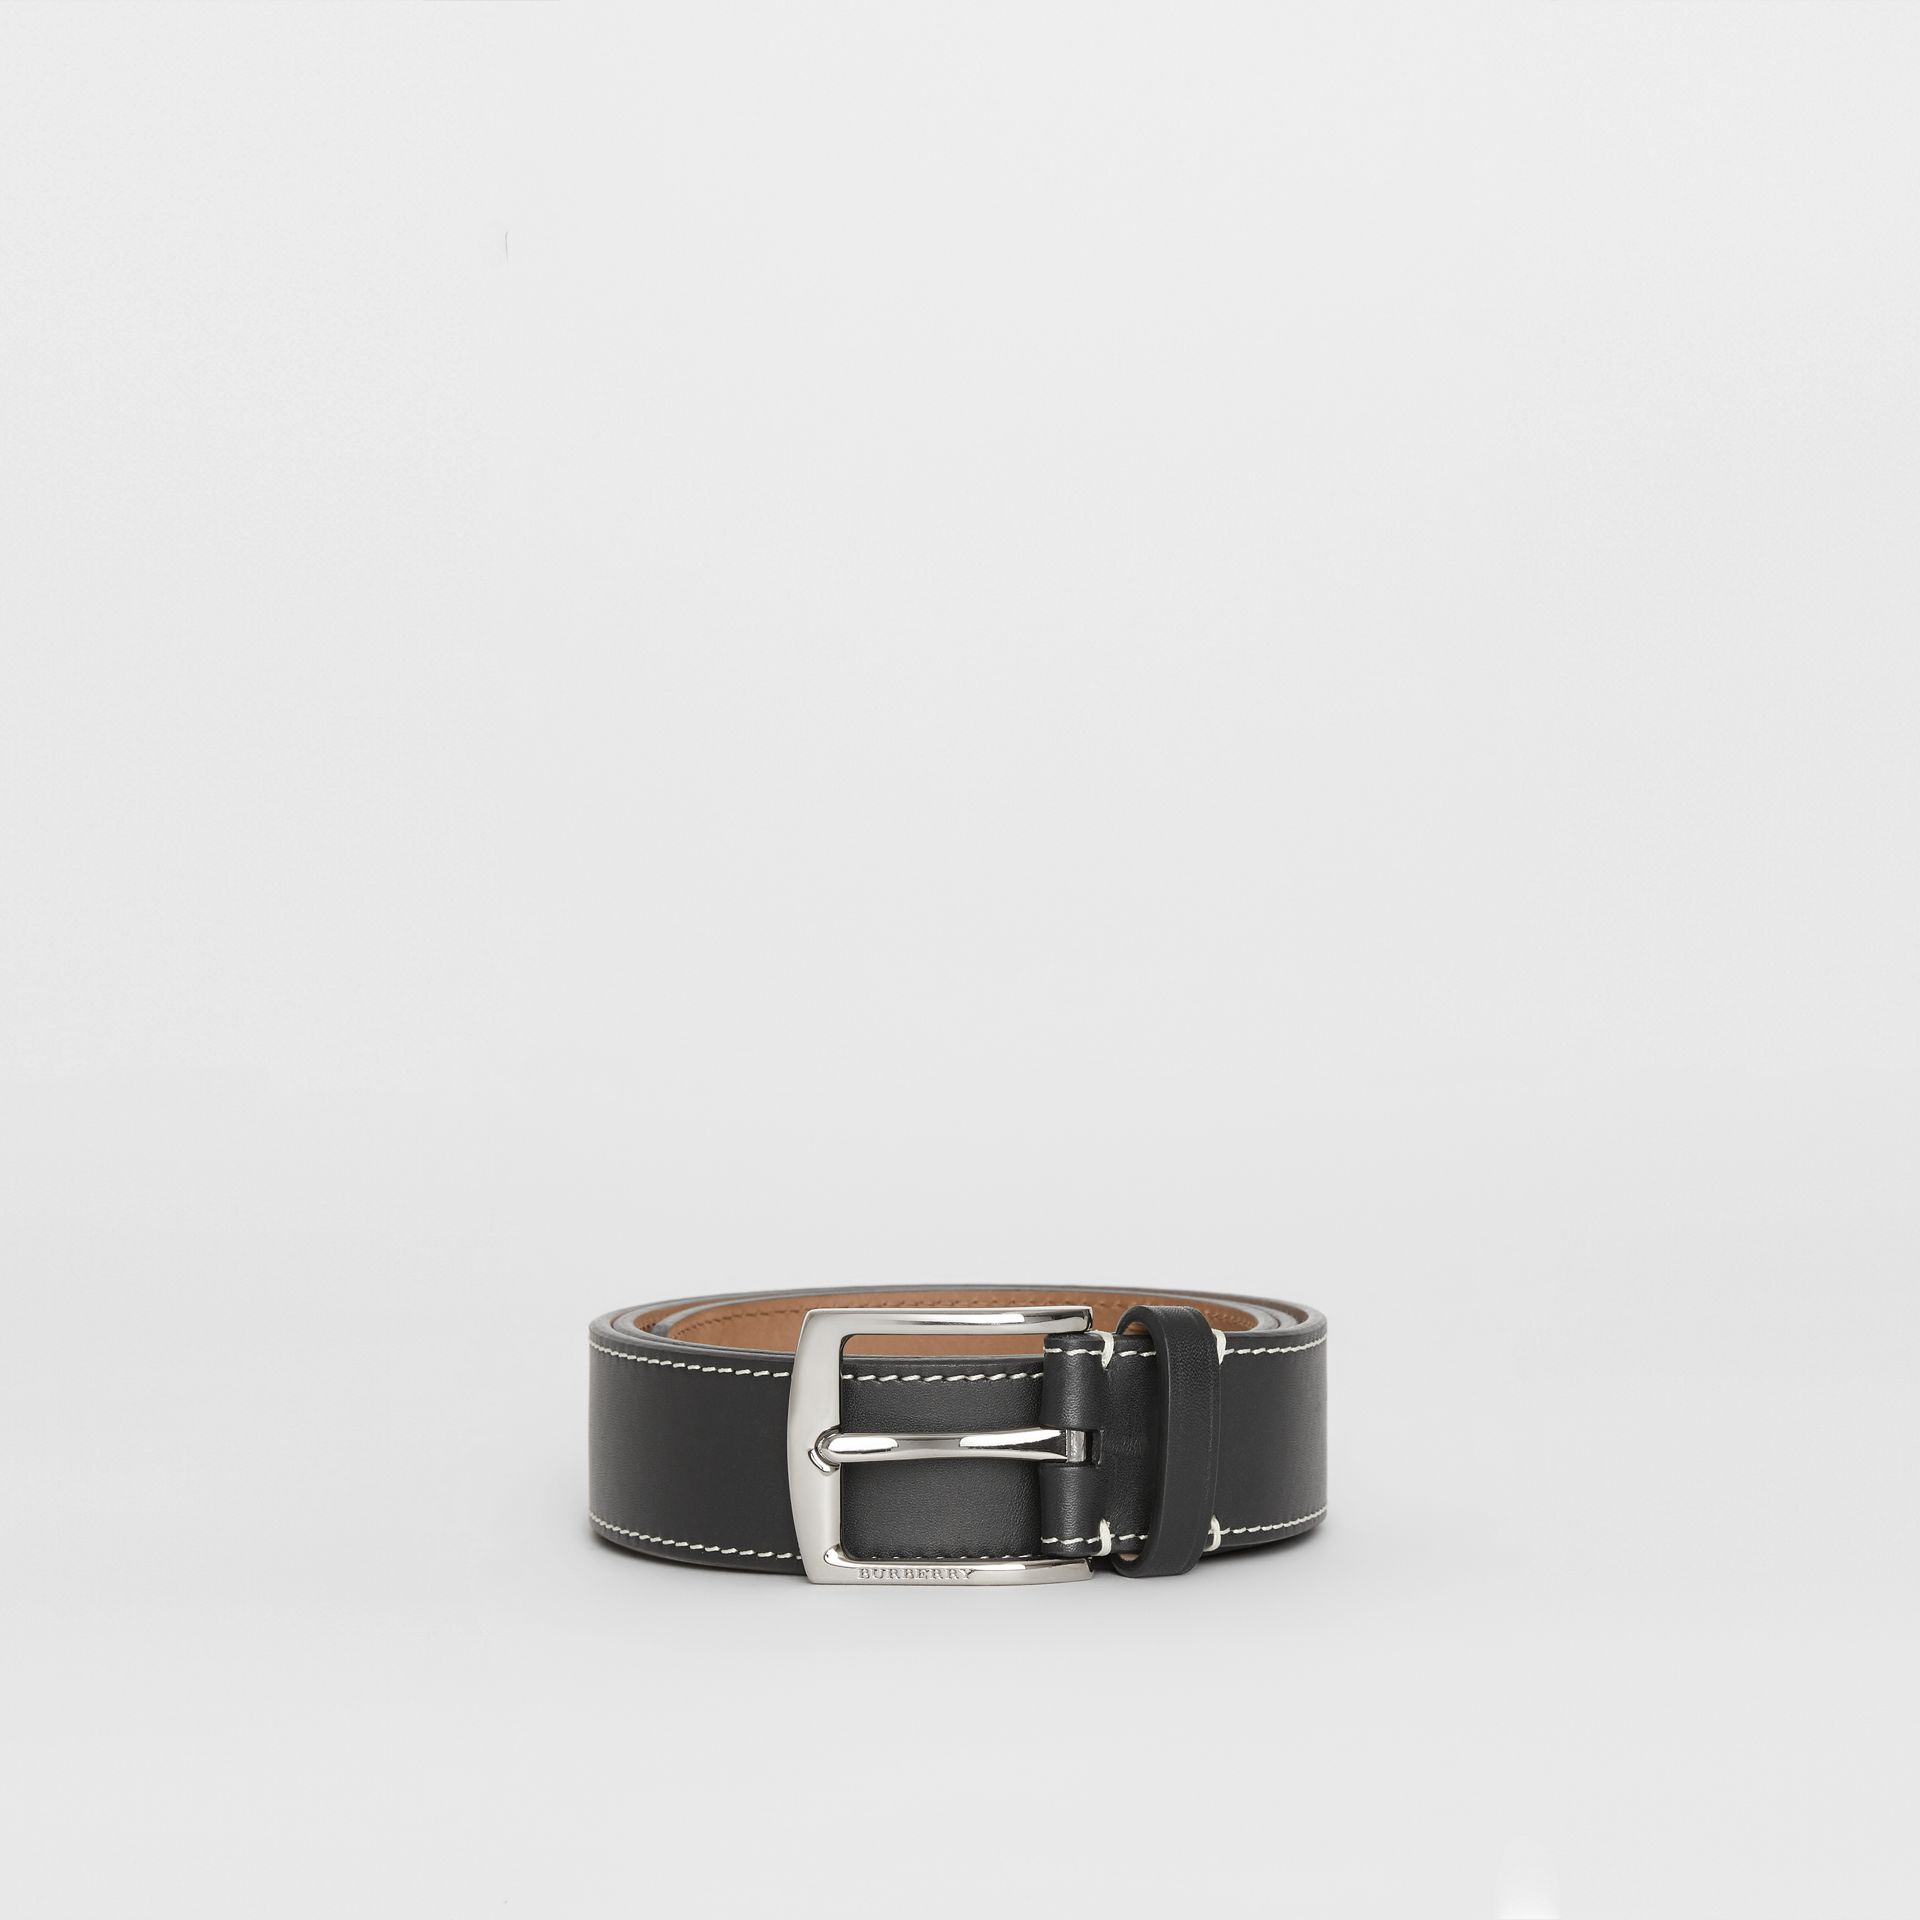 Topstitched Leather Belt in Black - Men | Burberry Canada - gallery image 3